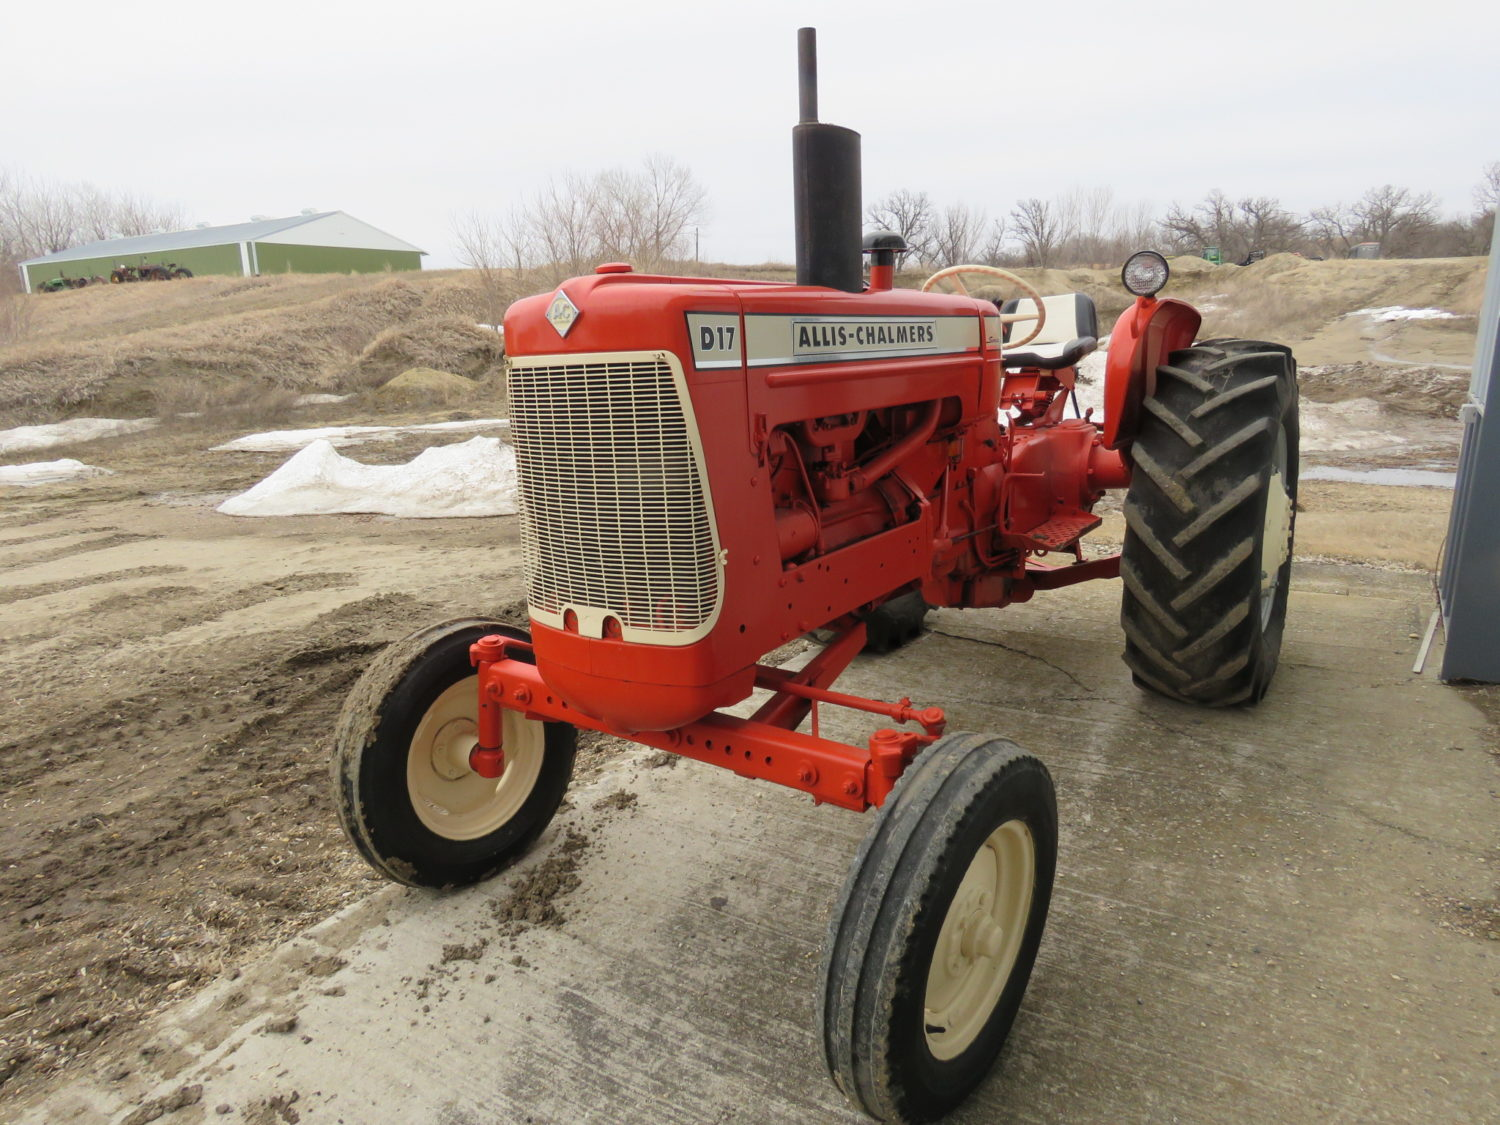 Day 1- Antique Tractors, Farm Equipment, Toys, & More- The James Graham Collection - image 14